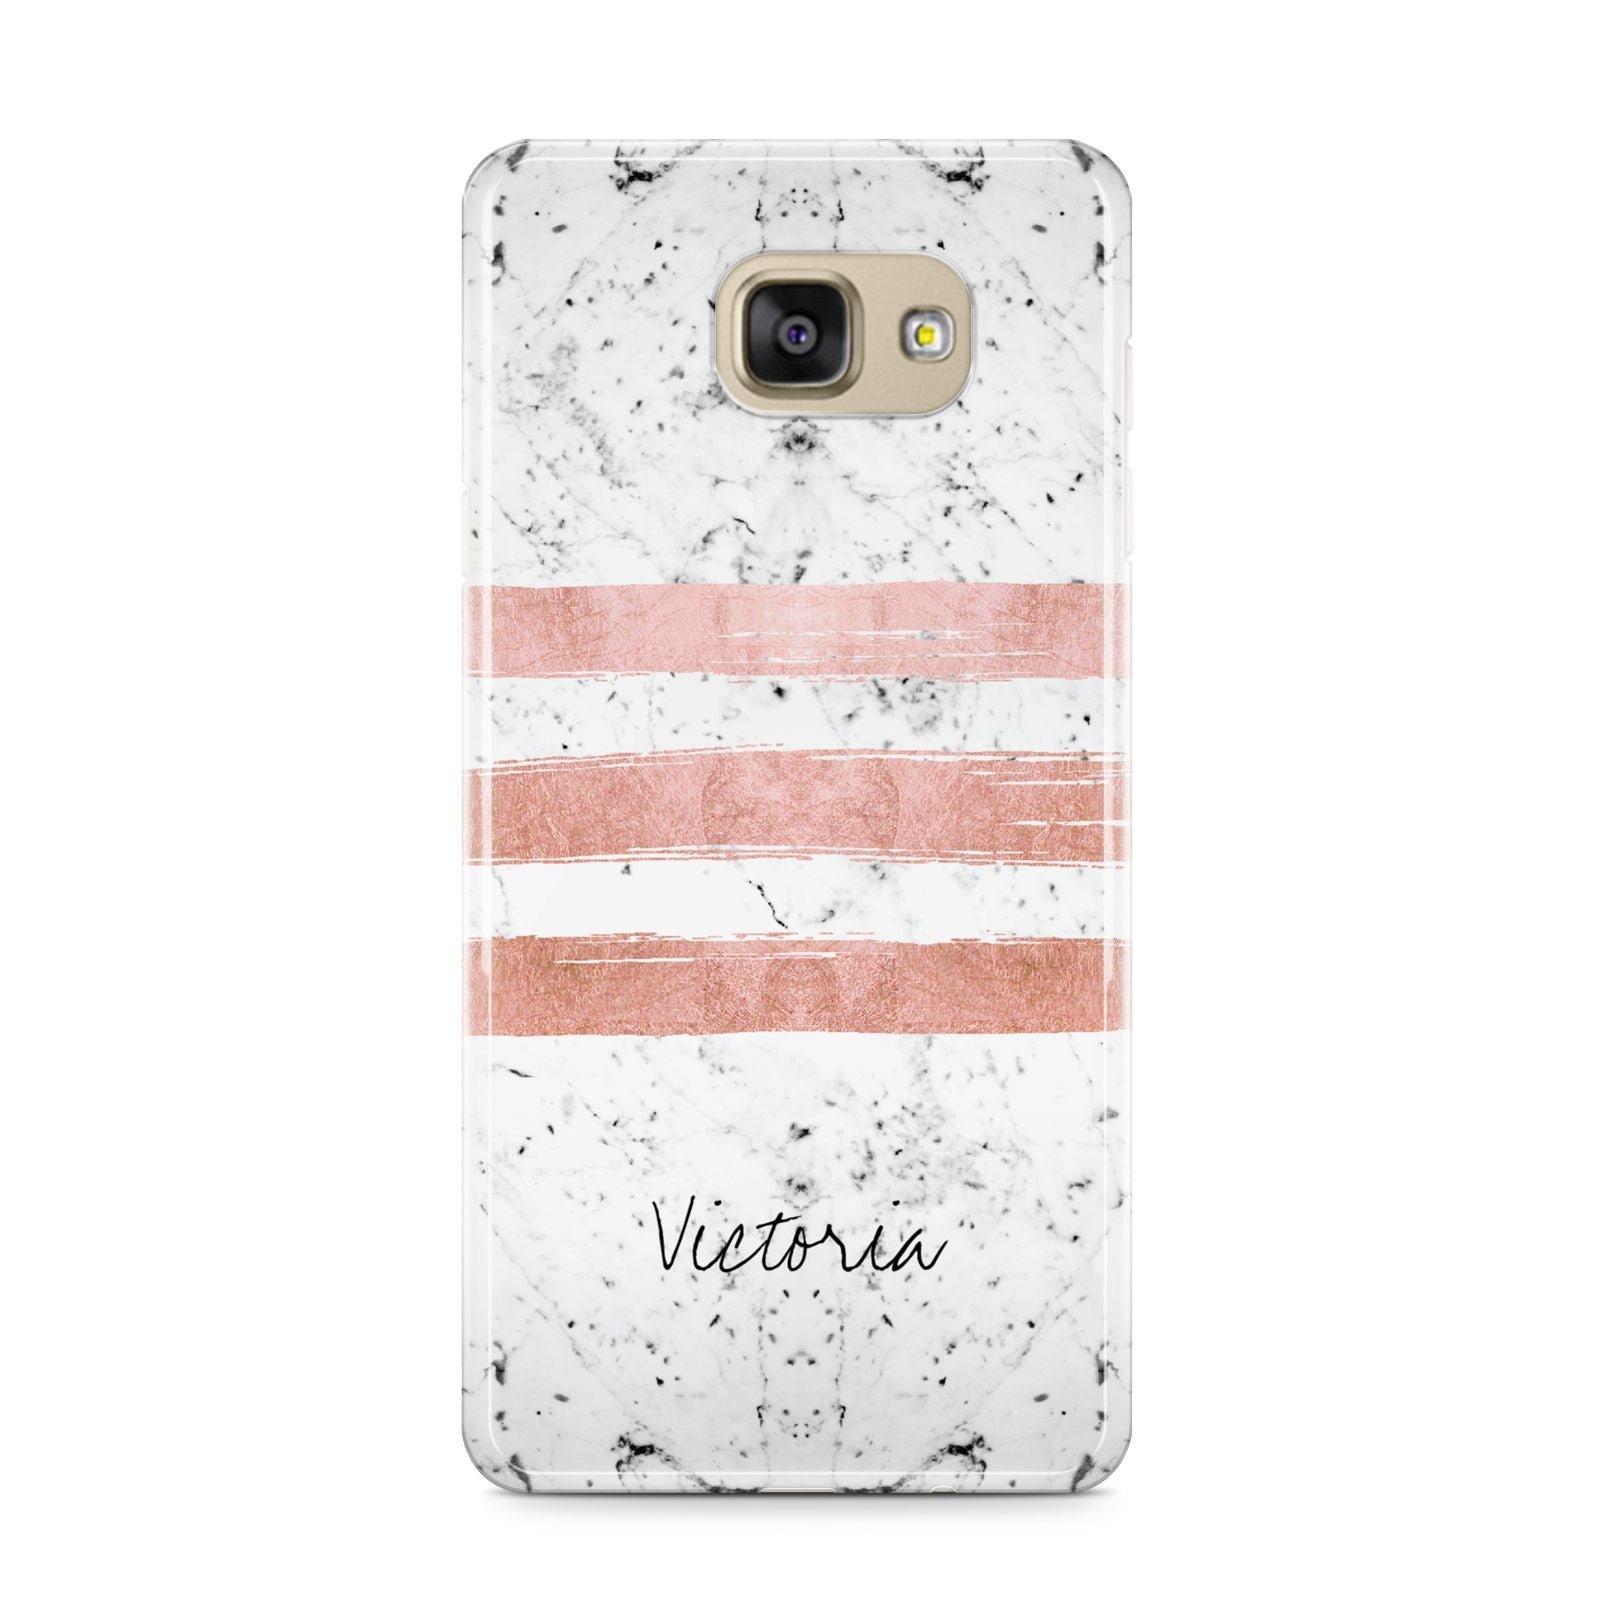 Personalised Rose Gold Brush Marble Initial Samsung Galaxy A9 2016 Case on gold phone